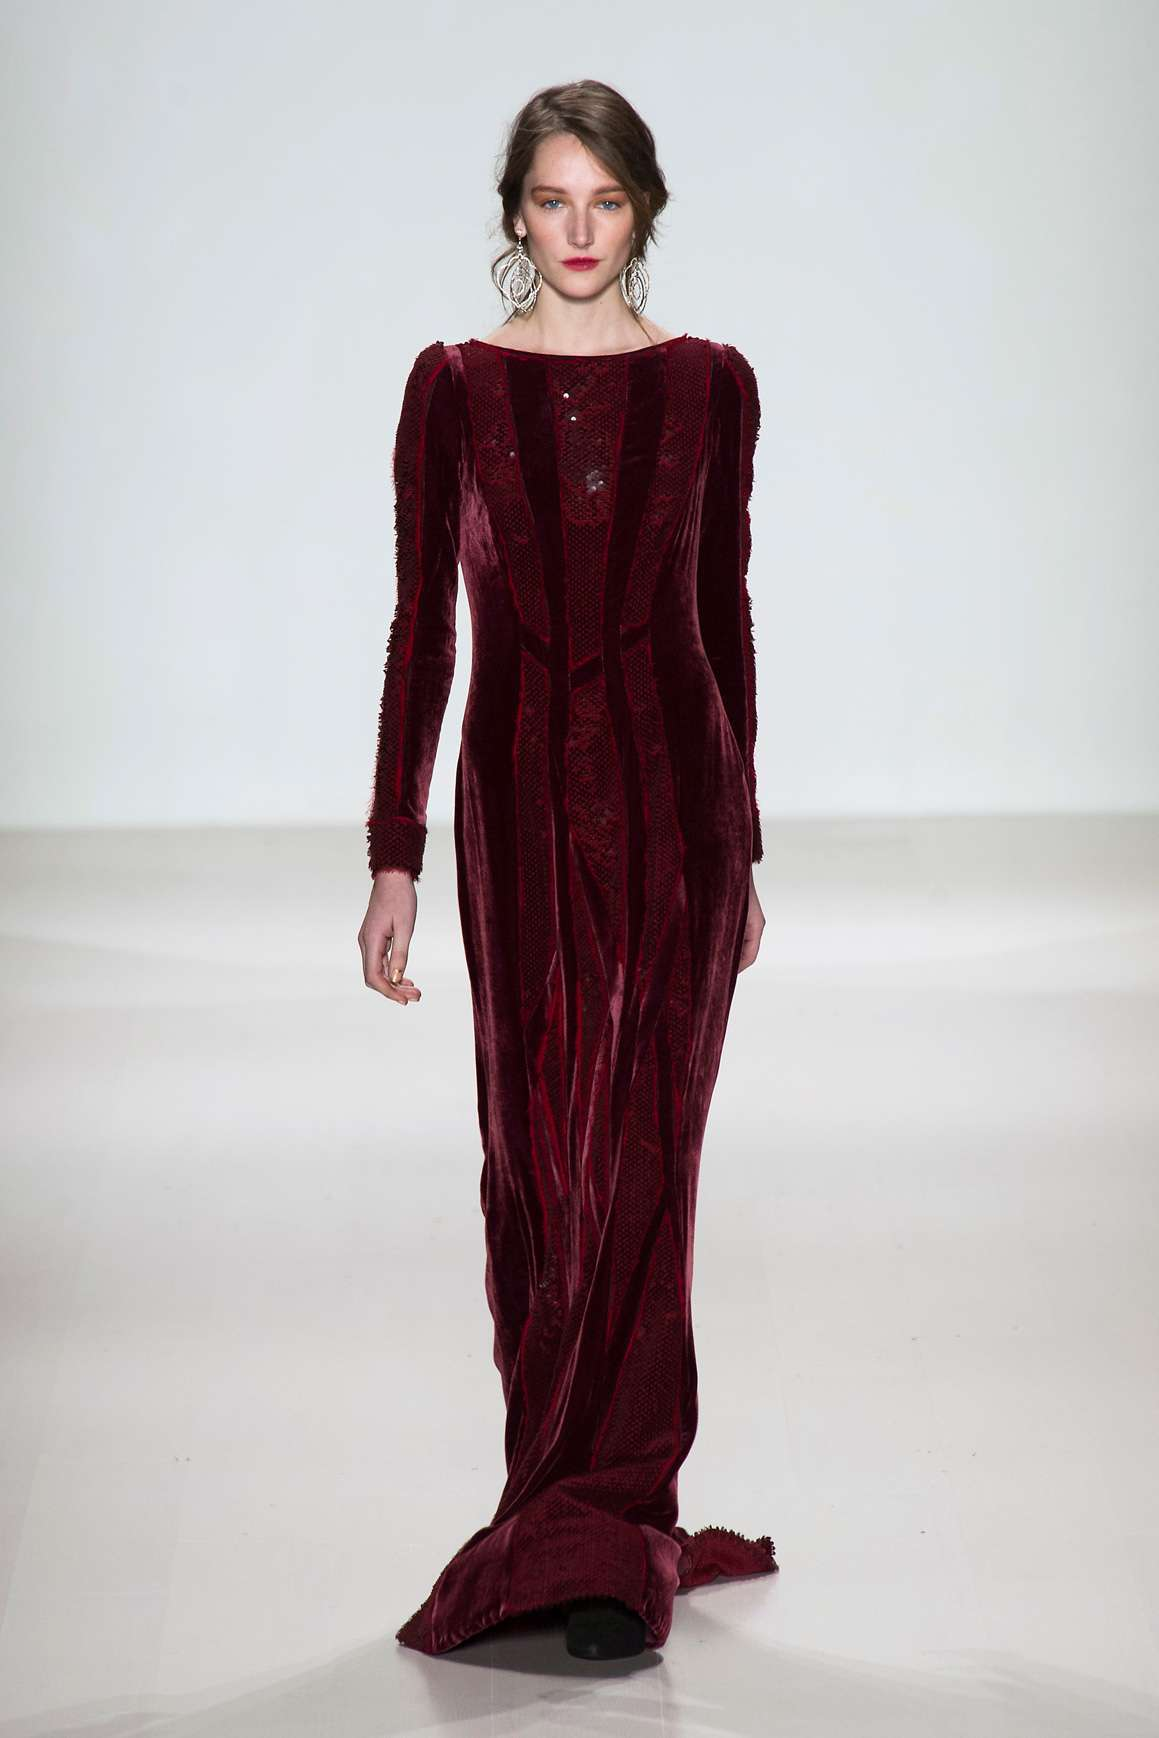 Maxi dress di velluto bordeaux